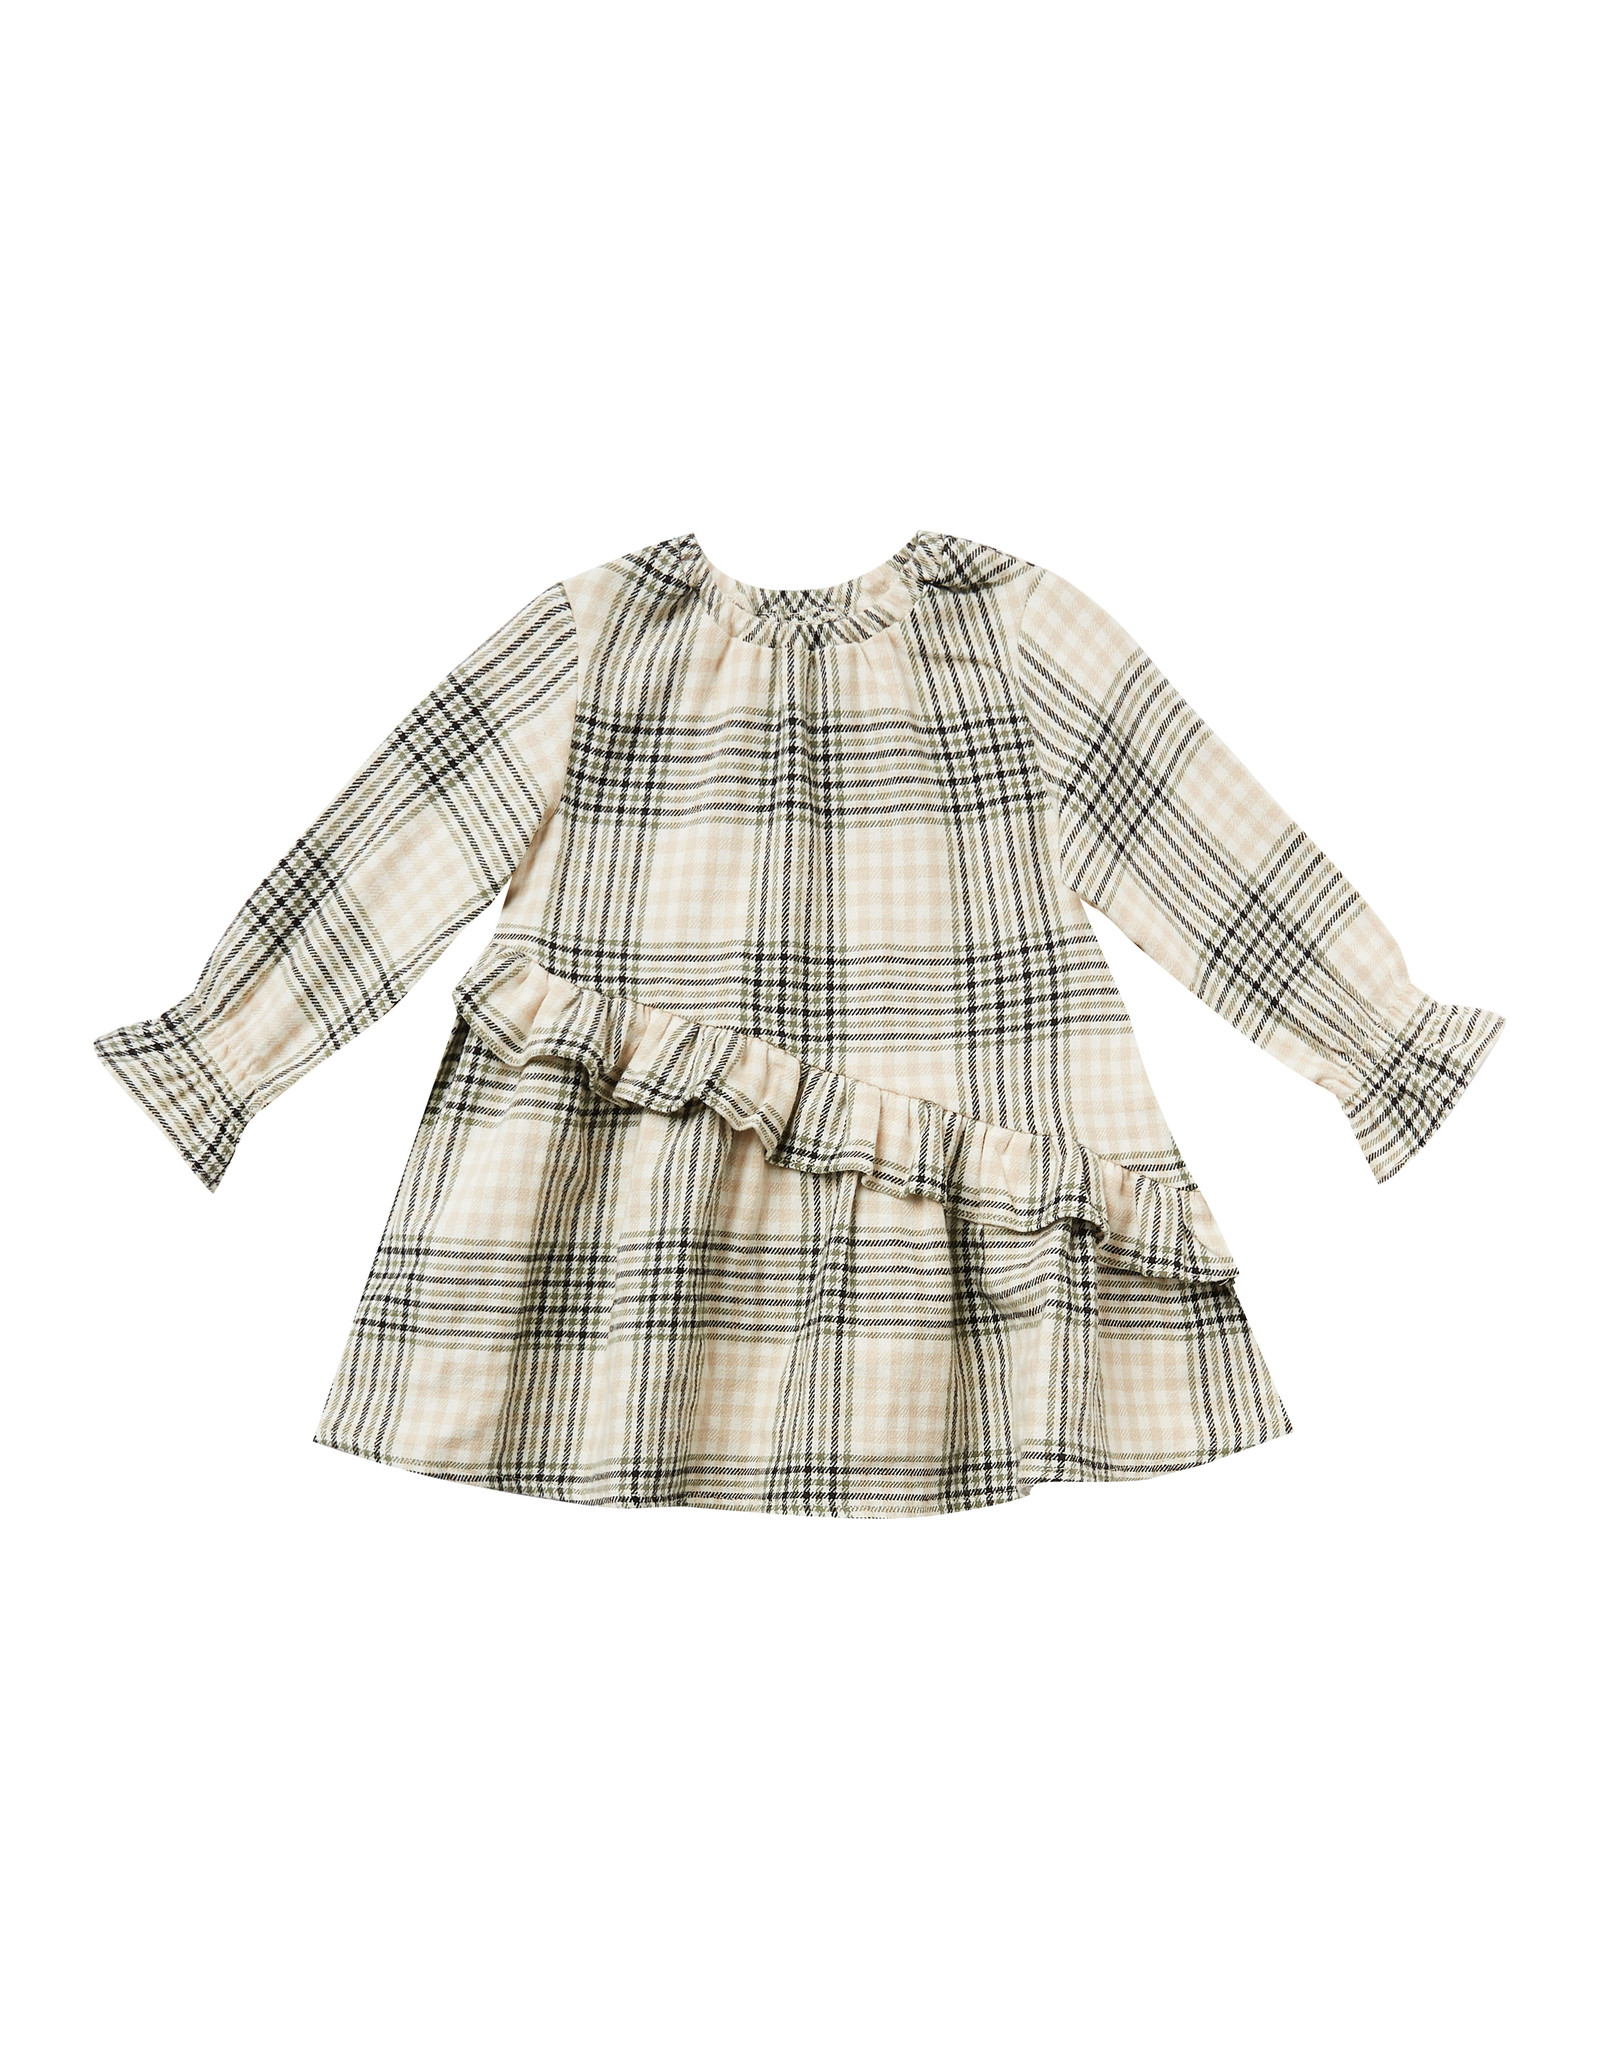 Rylee + Cru Rylee + Cru Flannel Hazel Dress